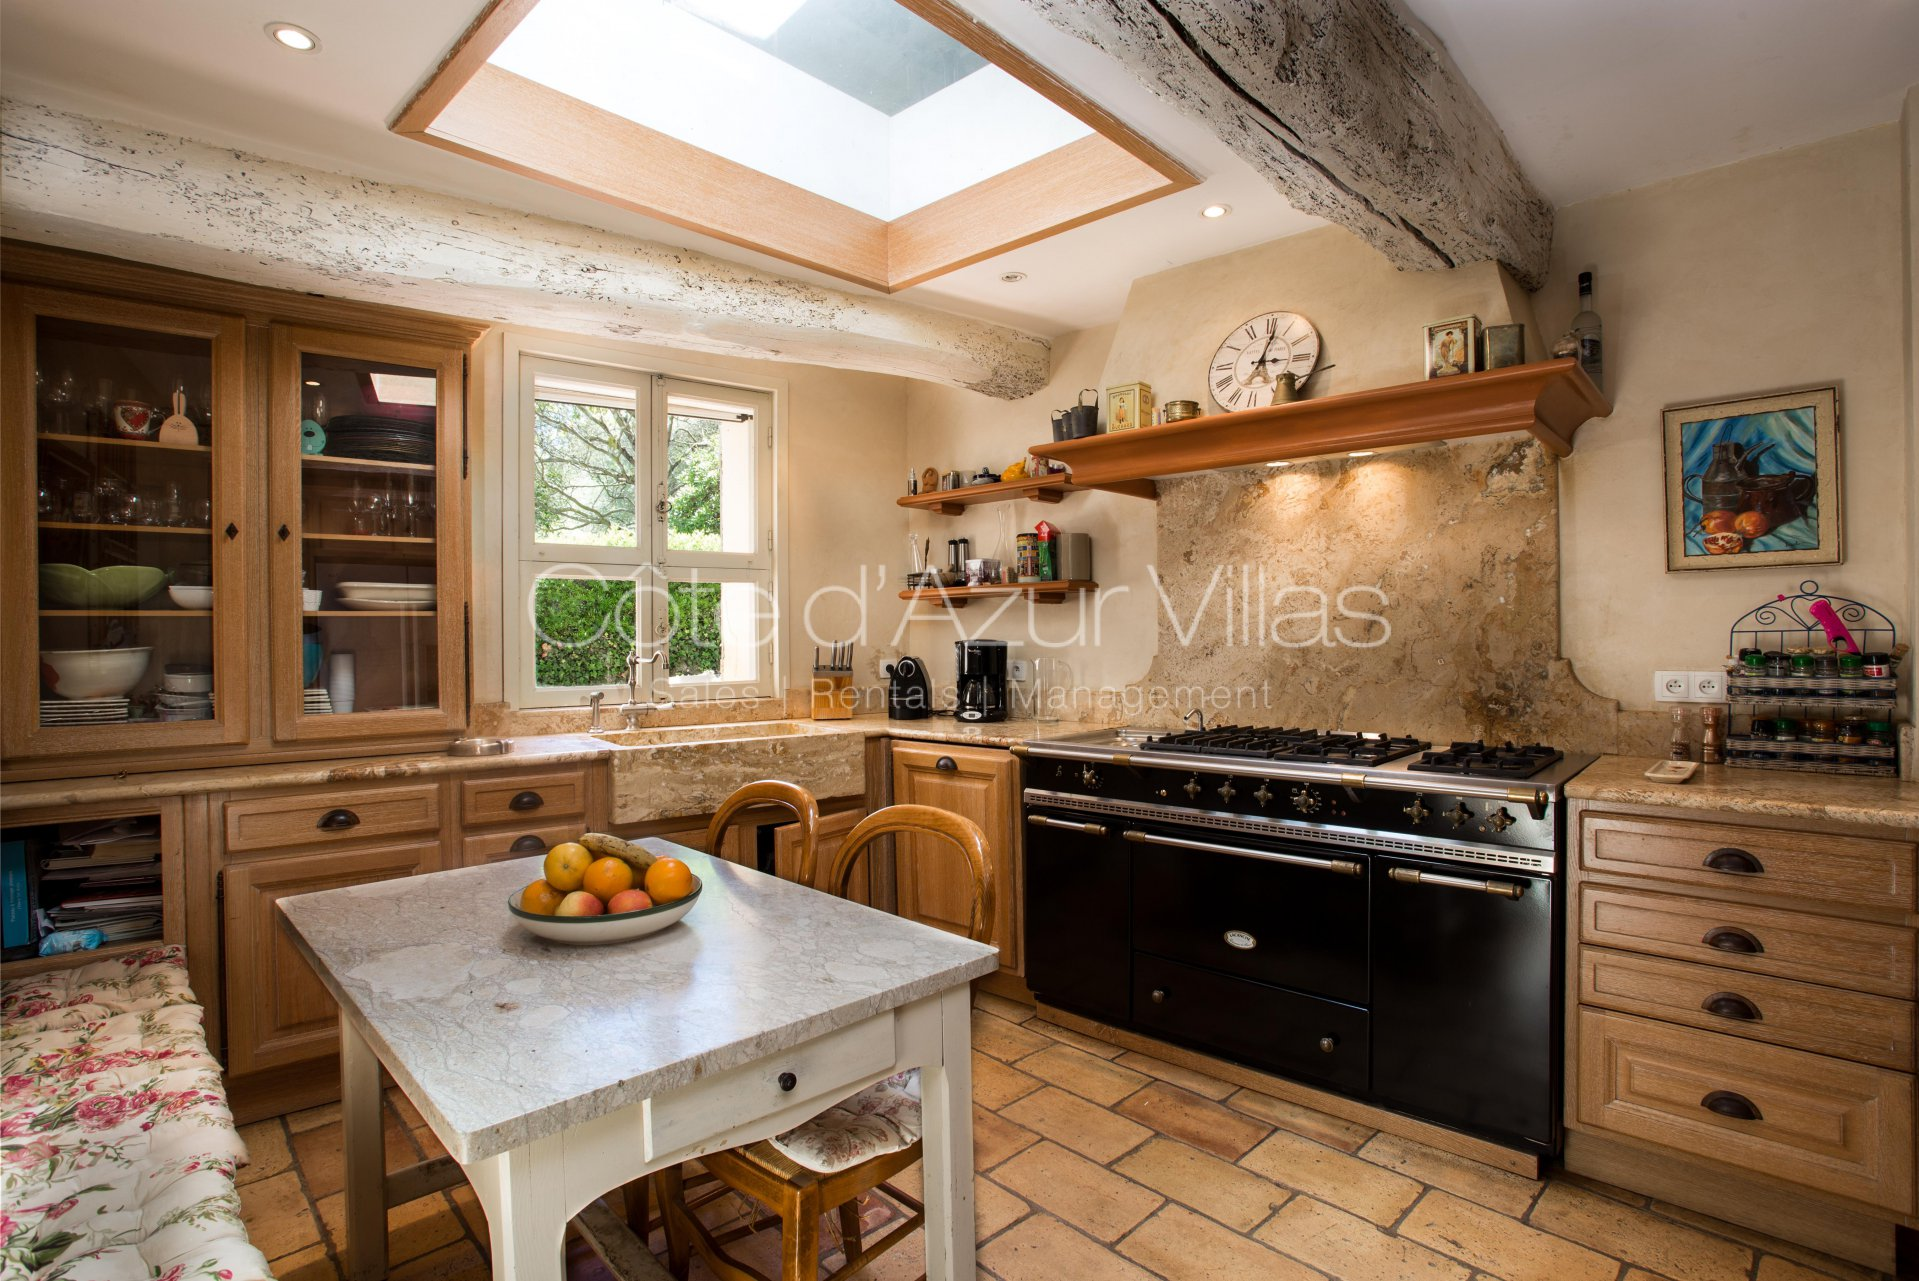 Skylight, natural light, kitchen bar